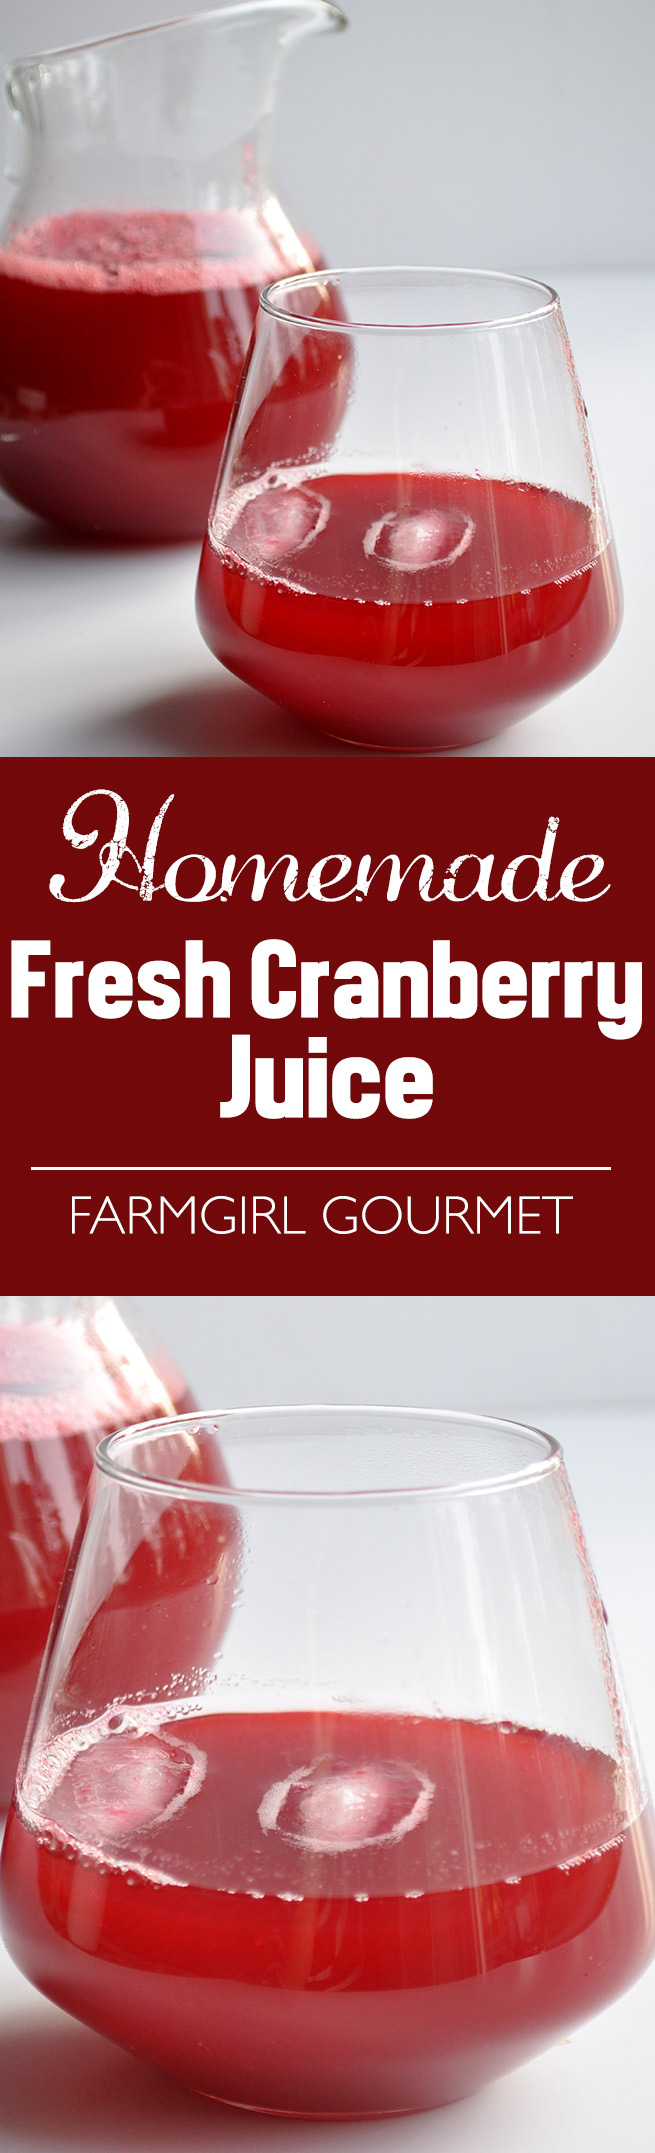 Homemade Fresh Cranberry Juice | farmgirlgourmet.com